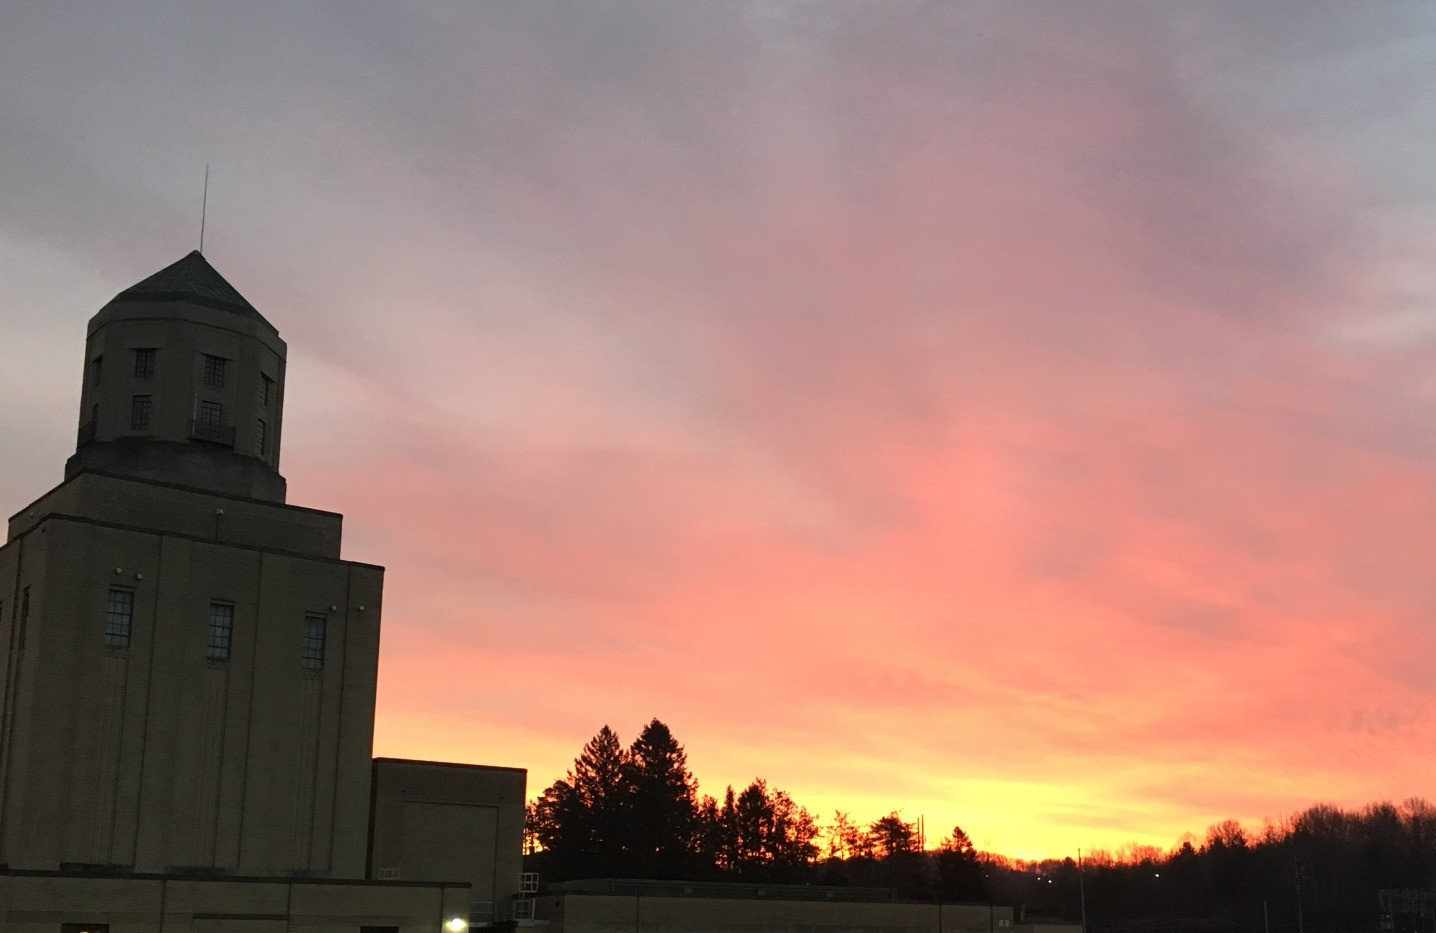 SUNRISE at MVSD, photo by C. Hrusovsky